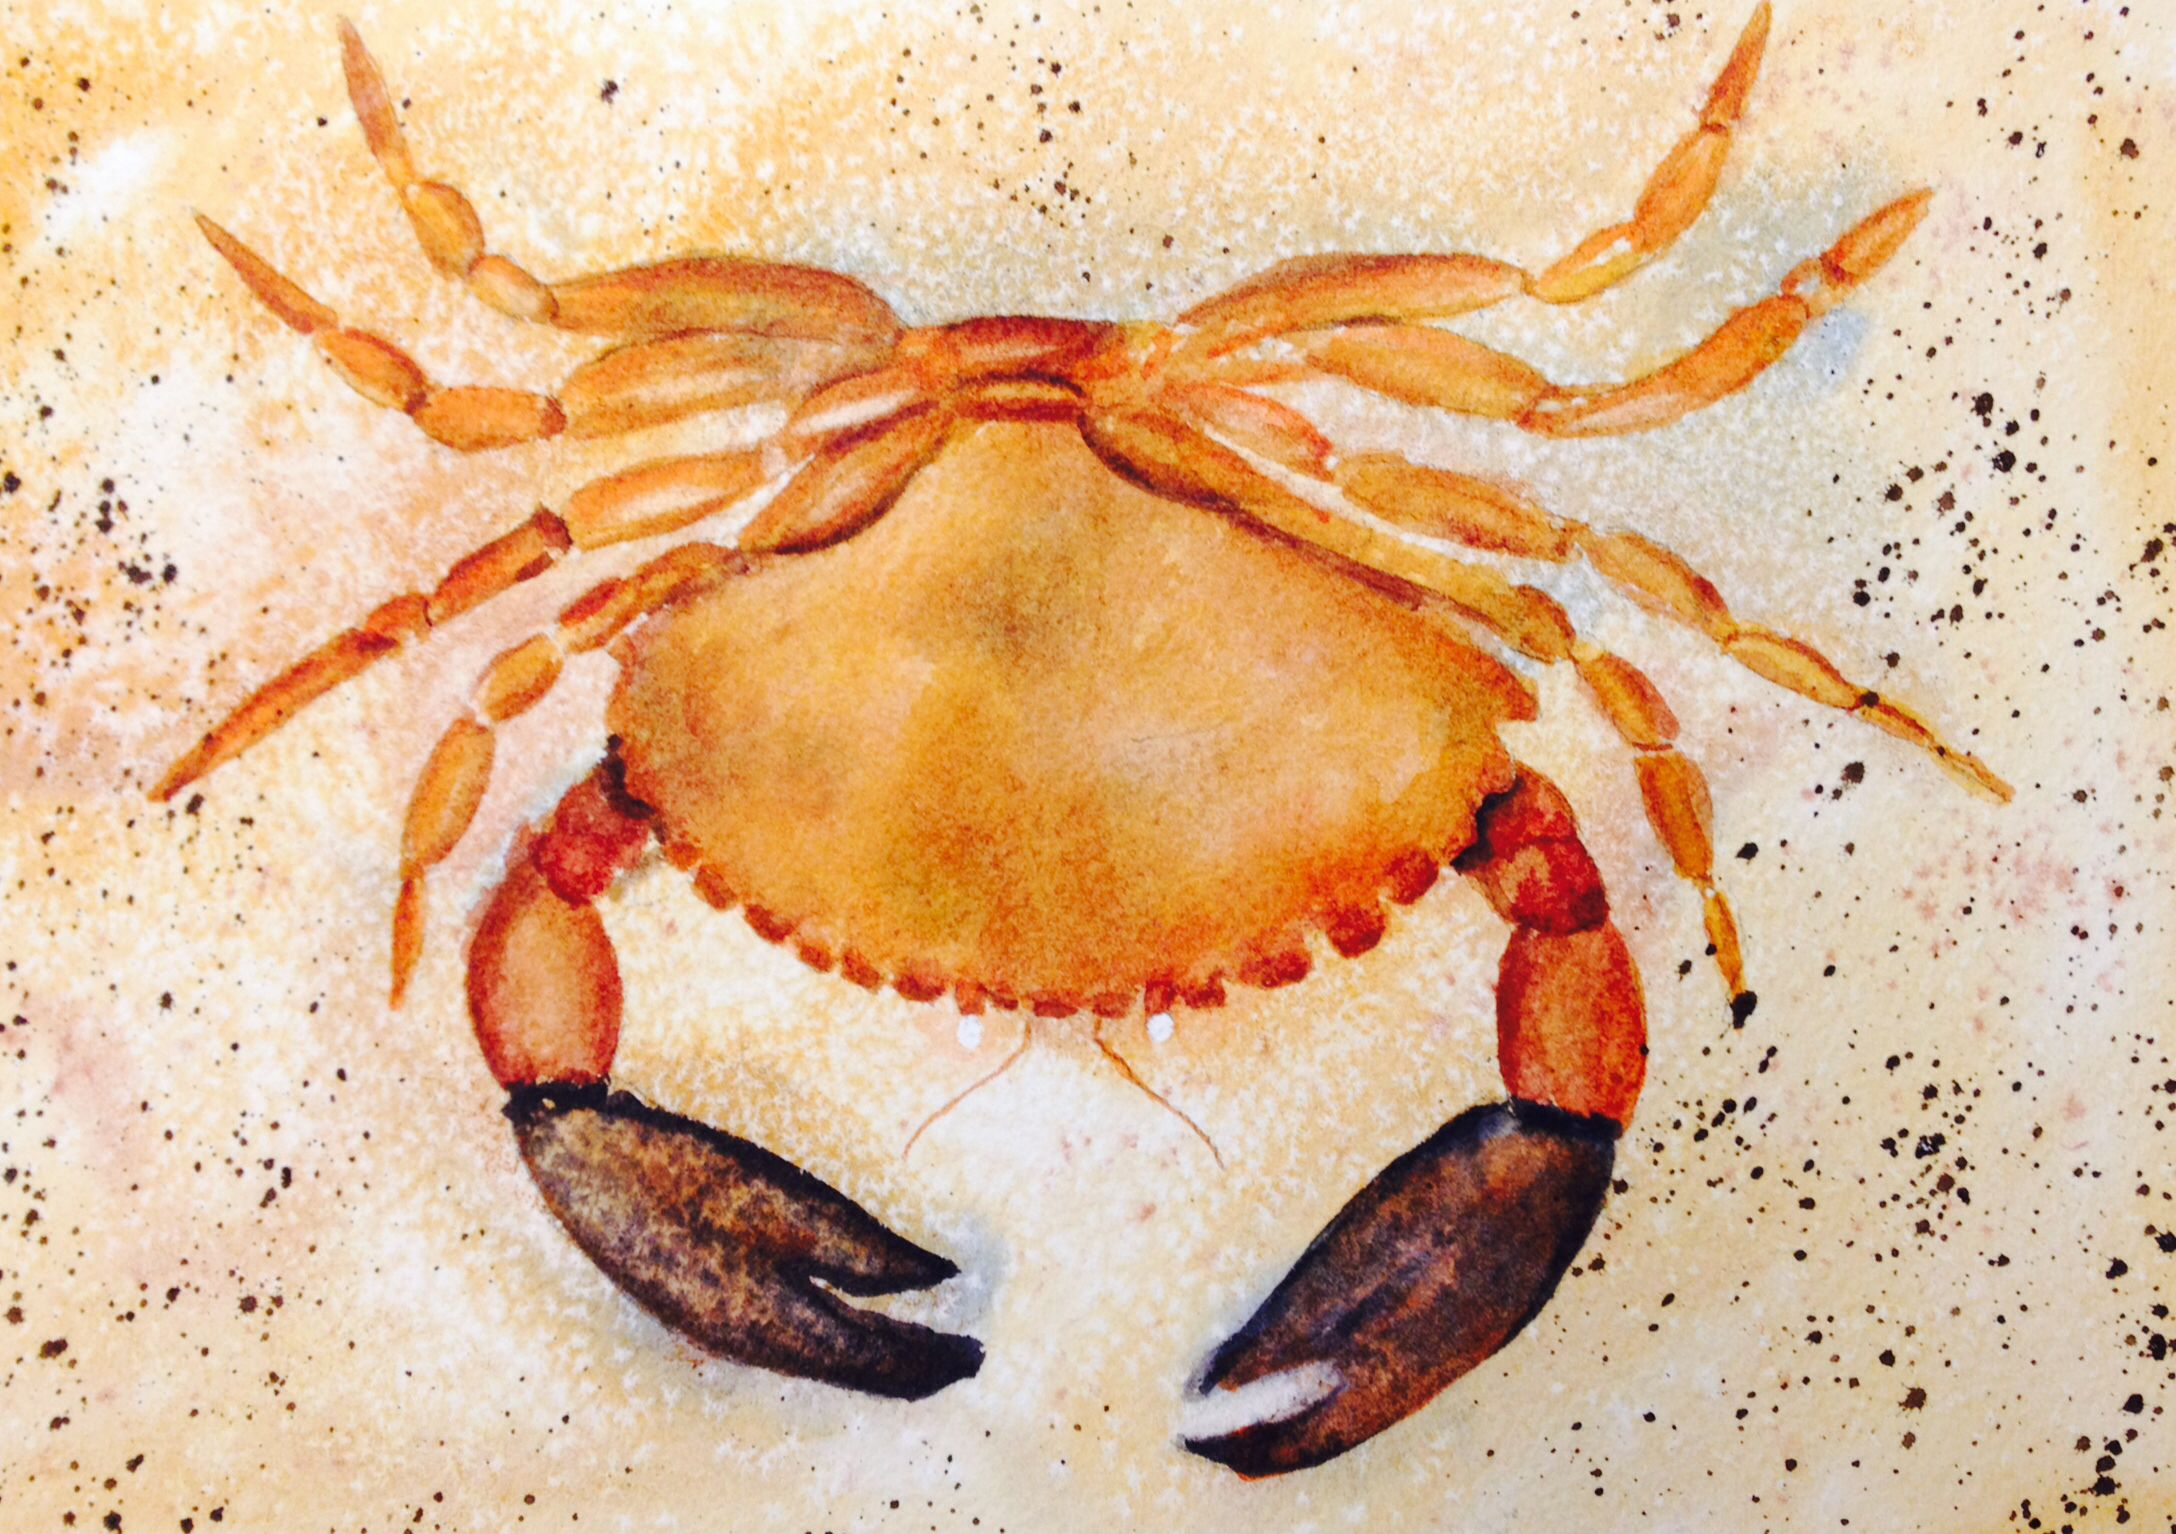 Watercolor - a crab I painted.  I used lots of salt, splatters and Quin gold, my favorite color.